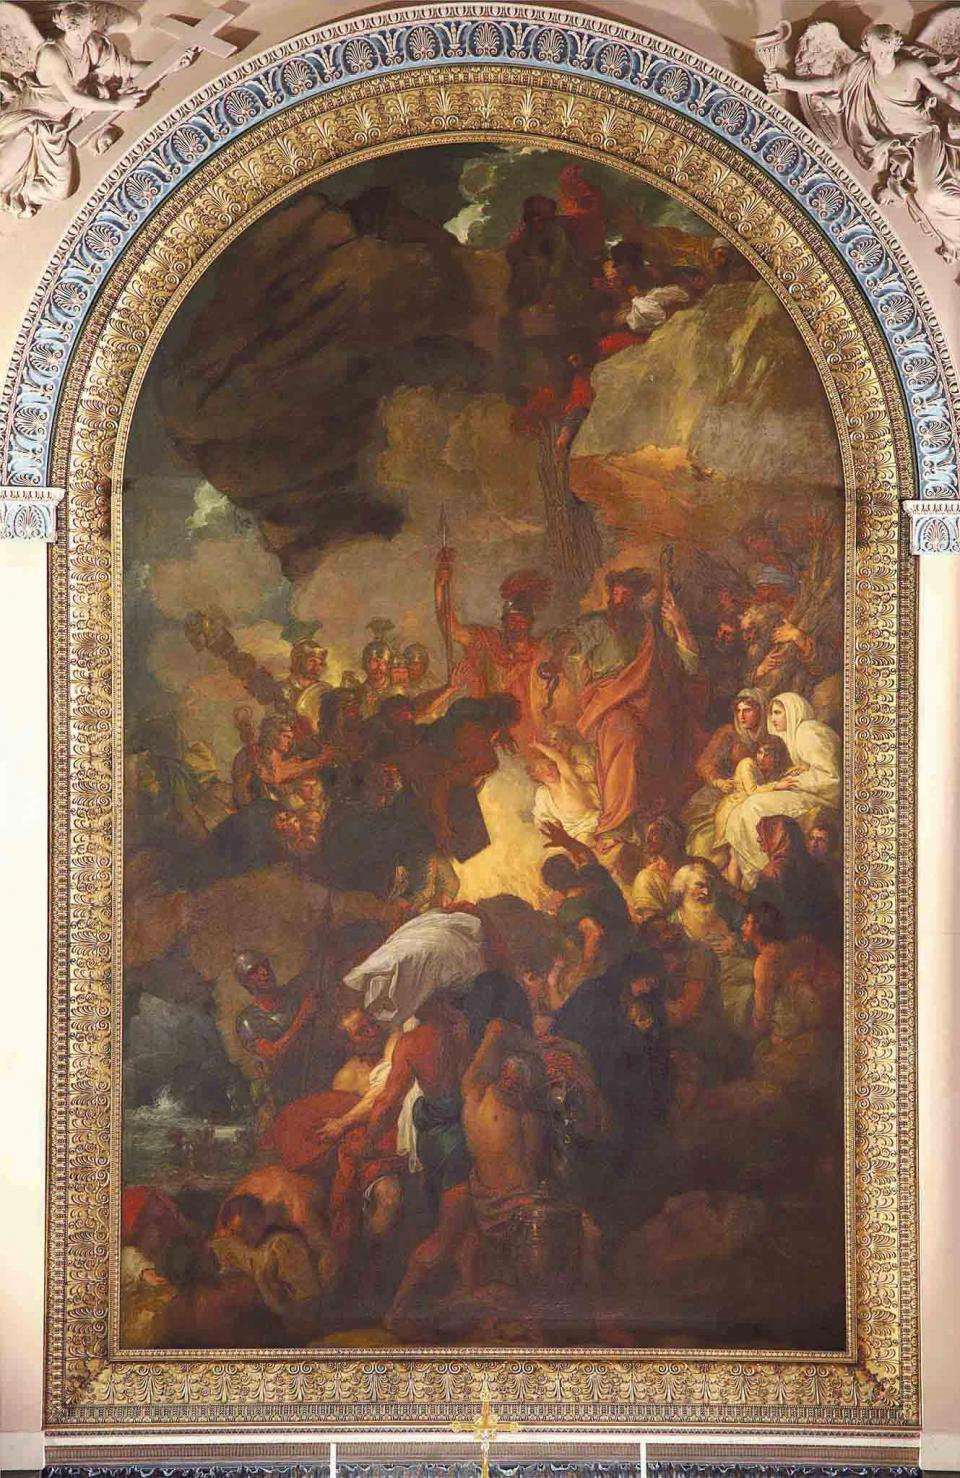 St Paul and the Viper by Benjamin West – the altarpiece in the Chapel of Saints Peter and Paul, in the Old Royal Naval College at Greenwich, UK. Courtesy of Deborah Robson, chapel manager.